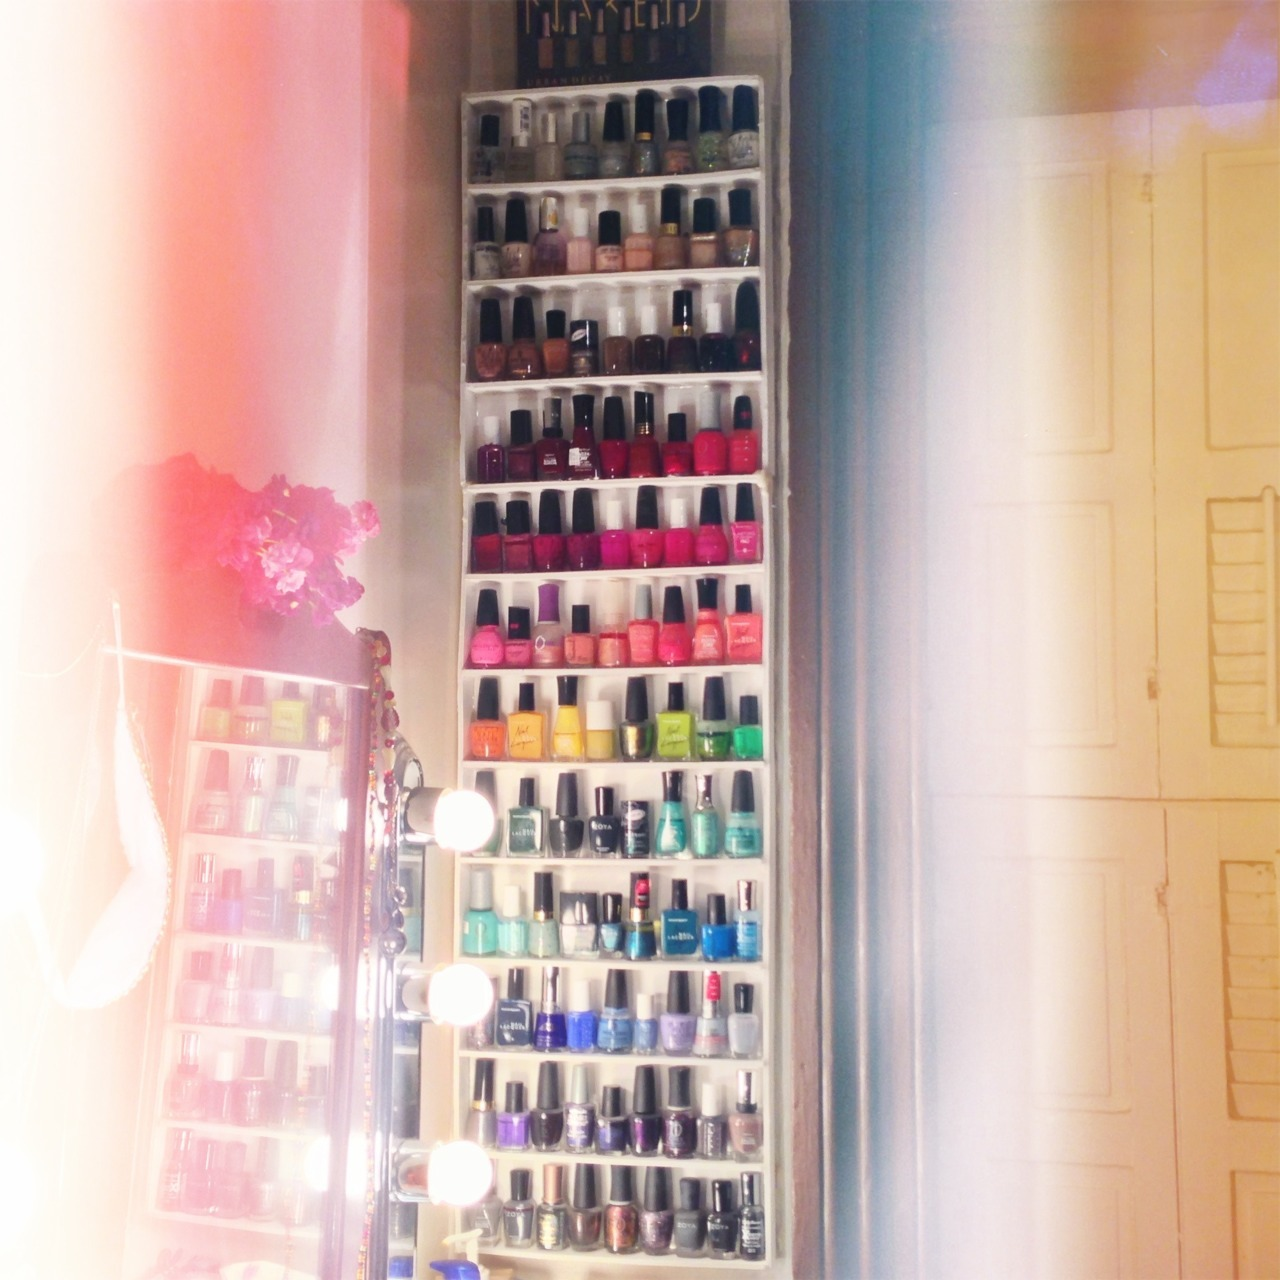 lastly - my nail polish collection.